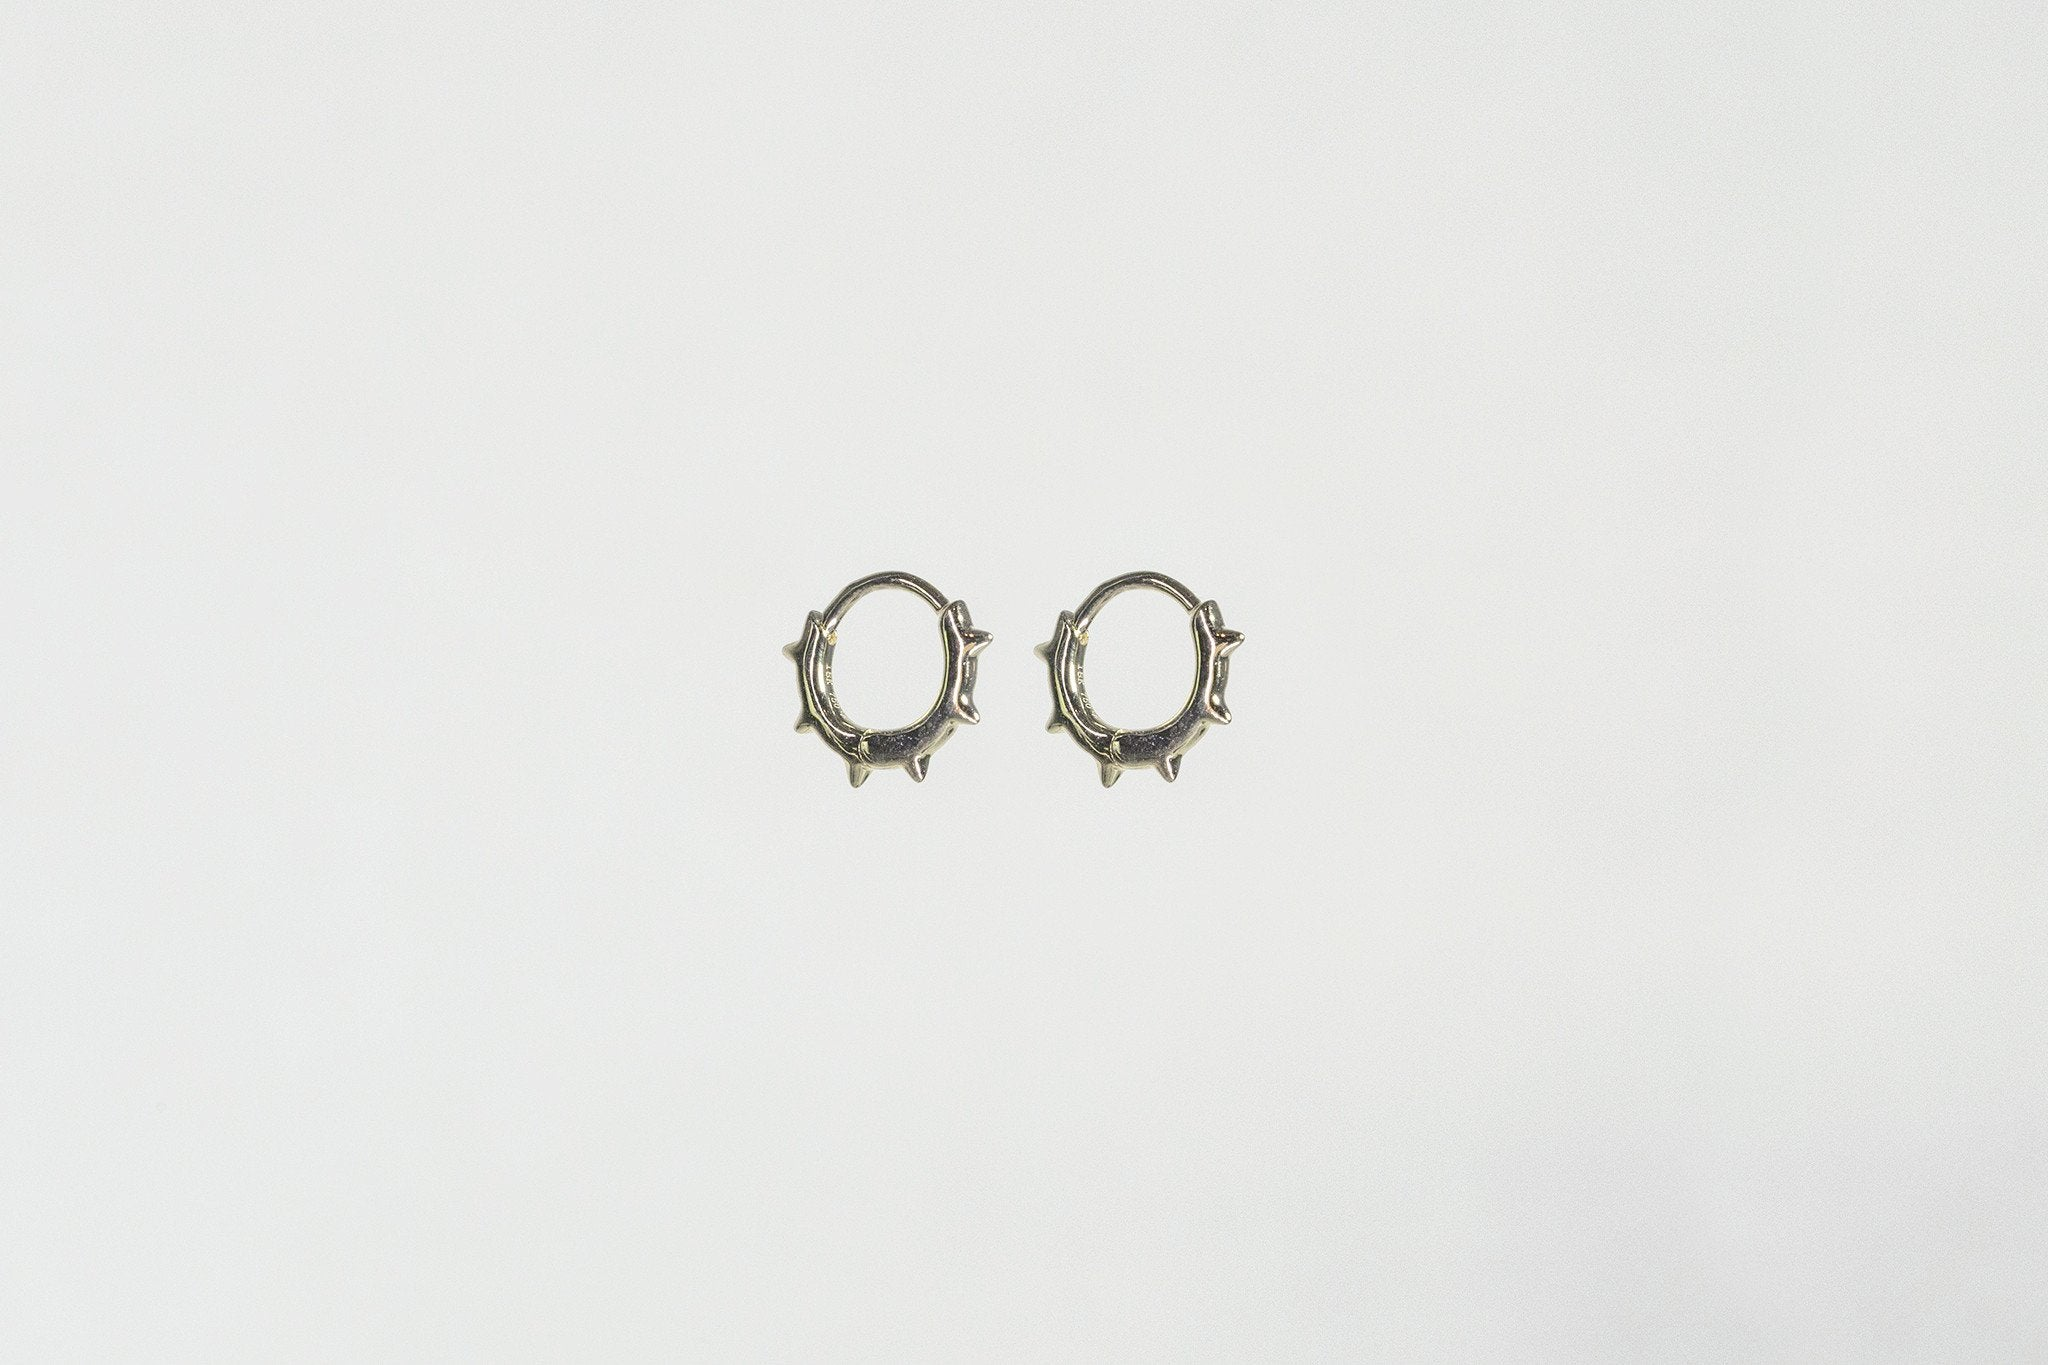 perfect for rim or lobe piercings the hoops have a secure lock mechanism